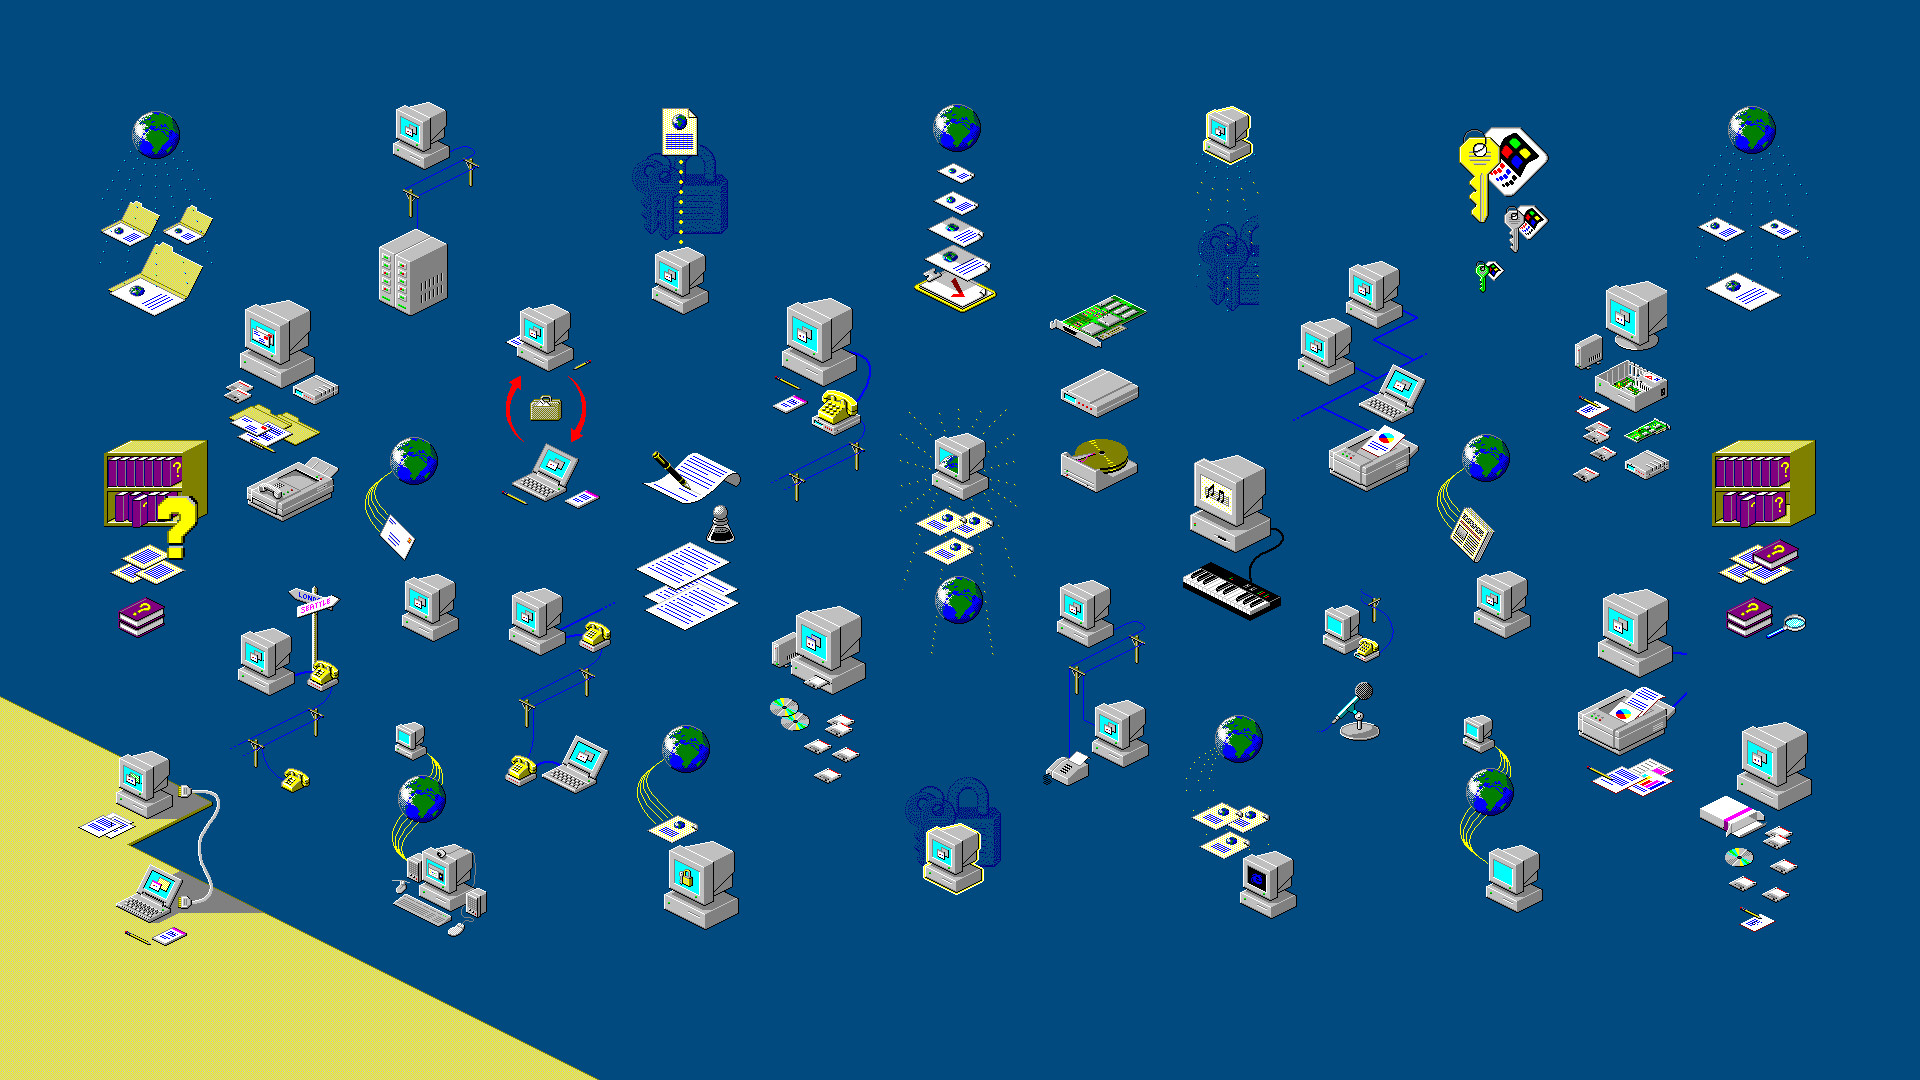 Res: 1920x1080, ... Windows 98 wizard artwork wallpaper by djdjukic